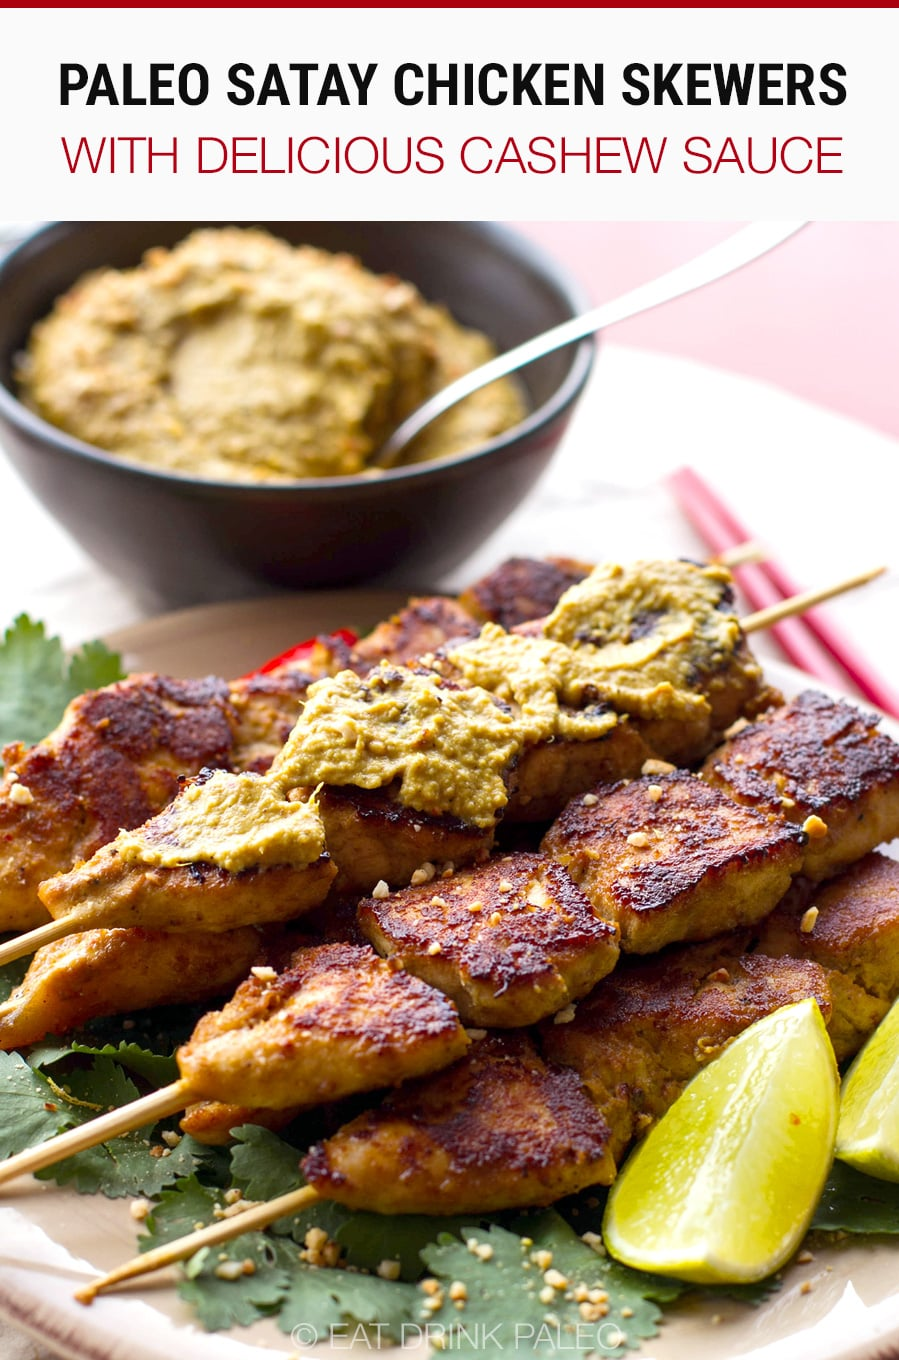 Paleo Satay Chicken Skewers With Creamy Cashew Sauce | #satay #chicken #paleo #paleorecipes